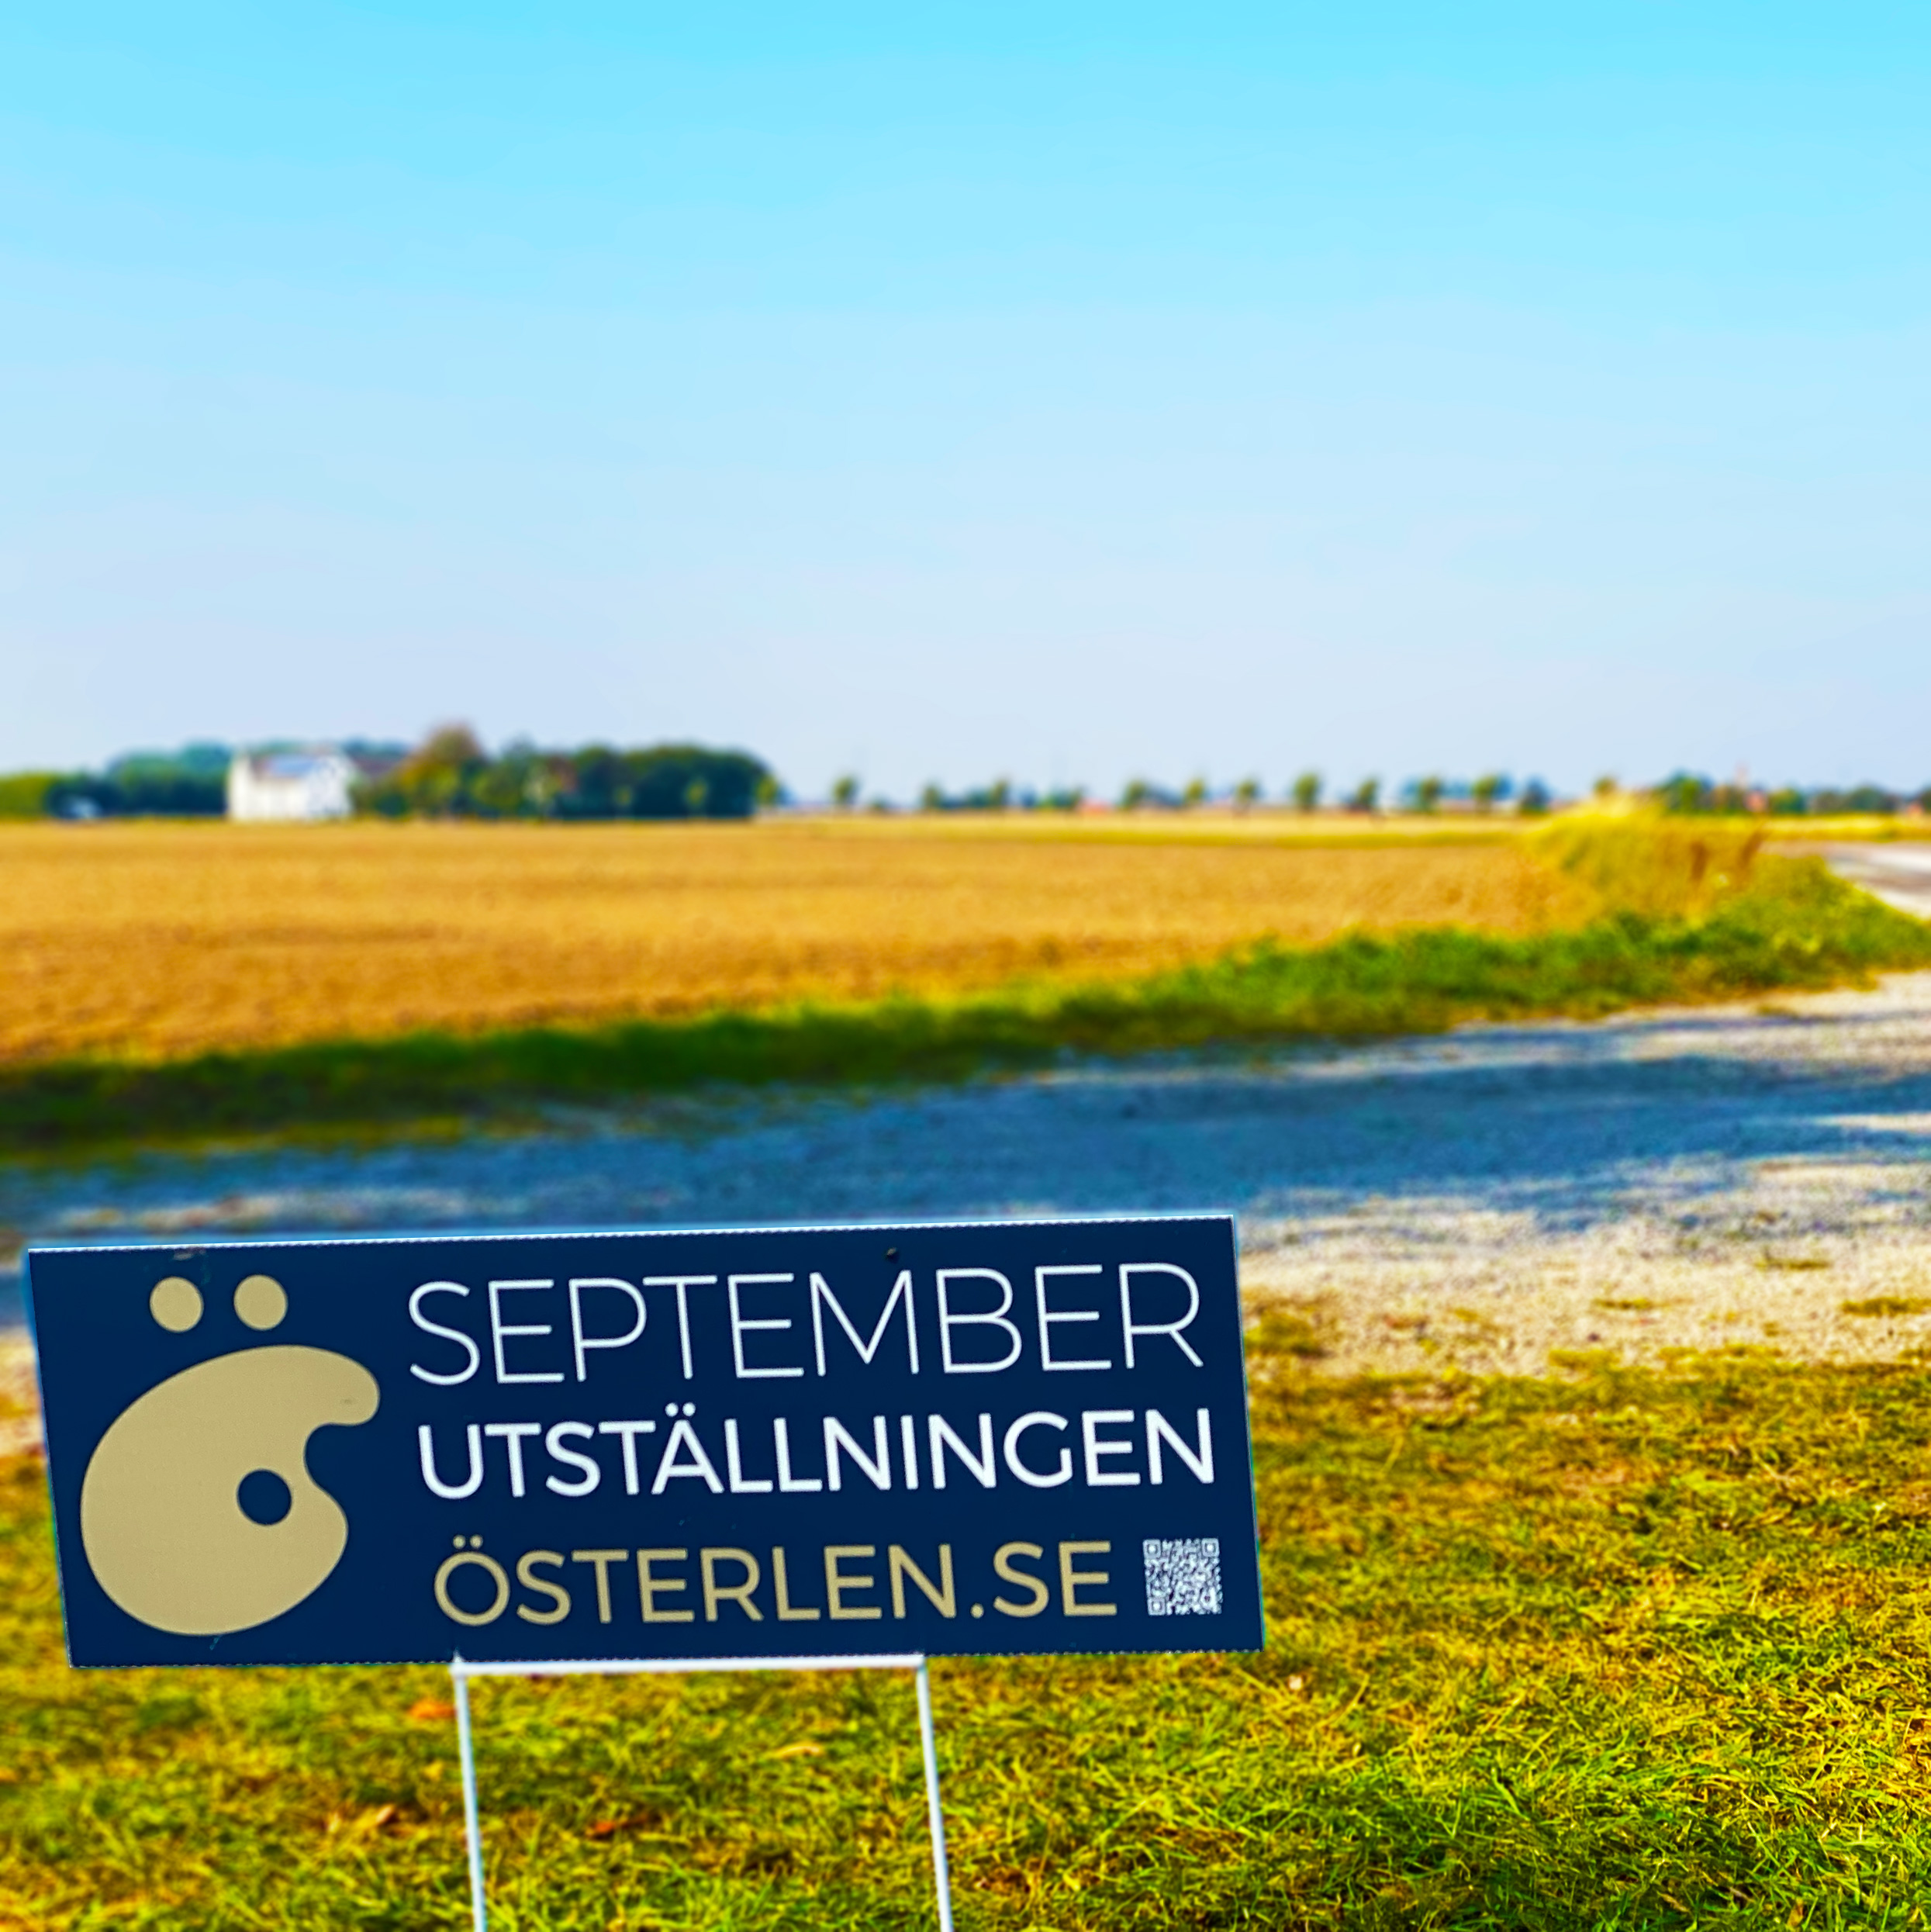 This year's art event: the September exhibition at Österlen